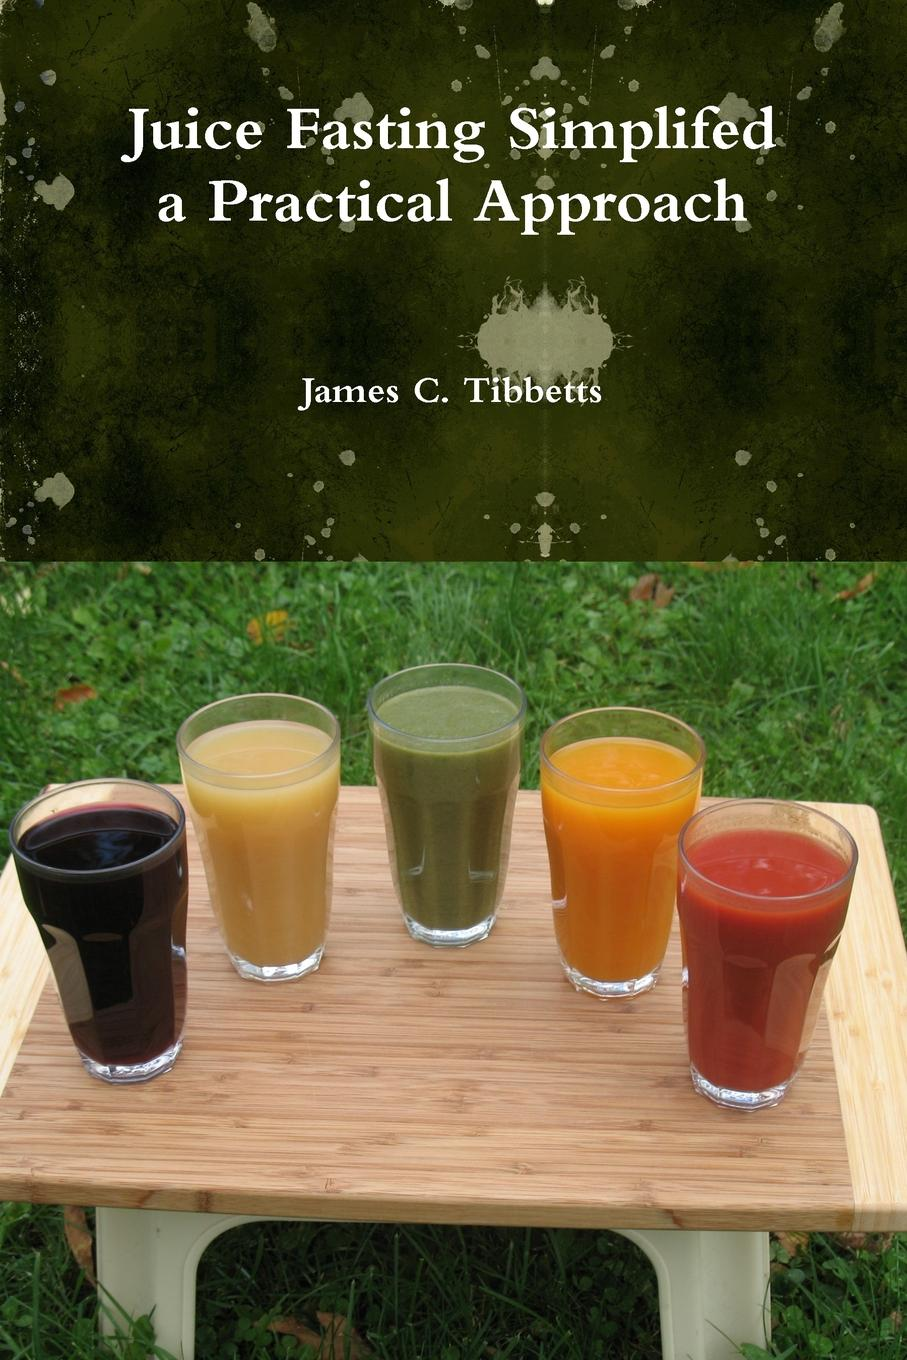 James C. Tibbetts Juice Fasting Simplifed a Practical Approach